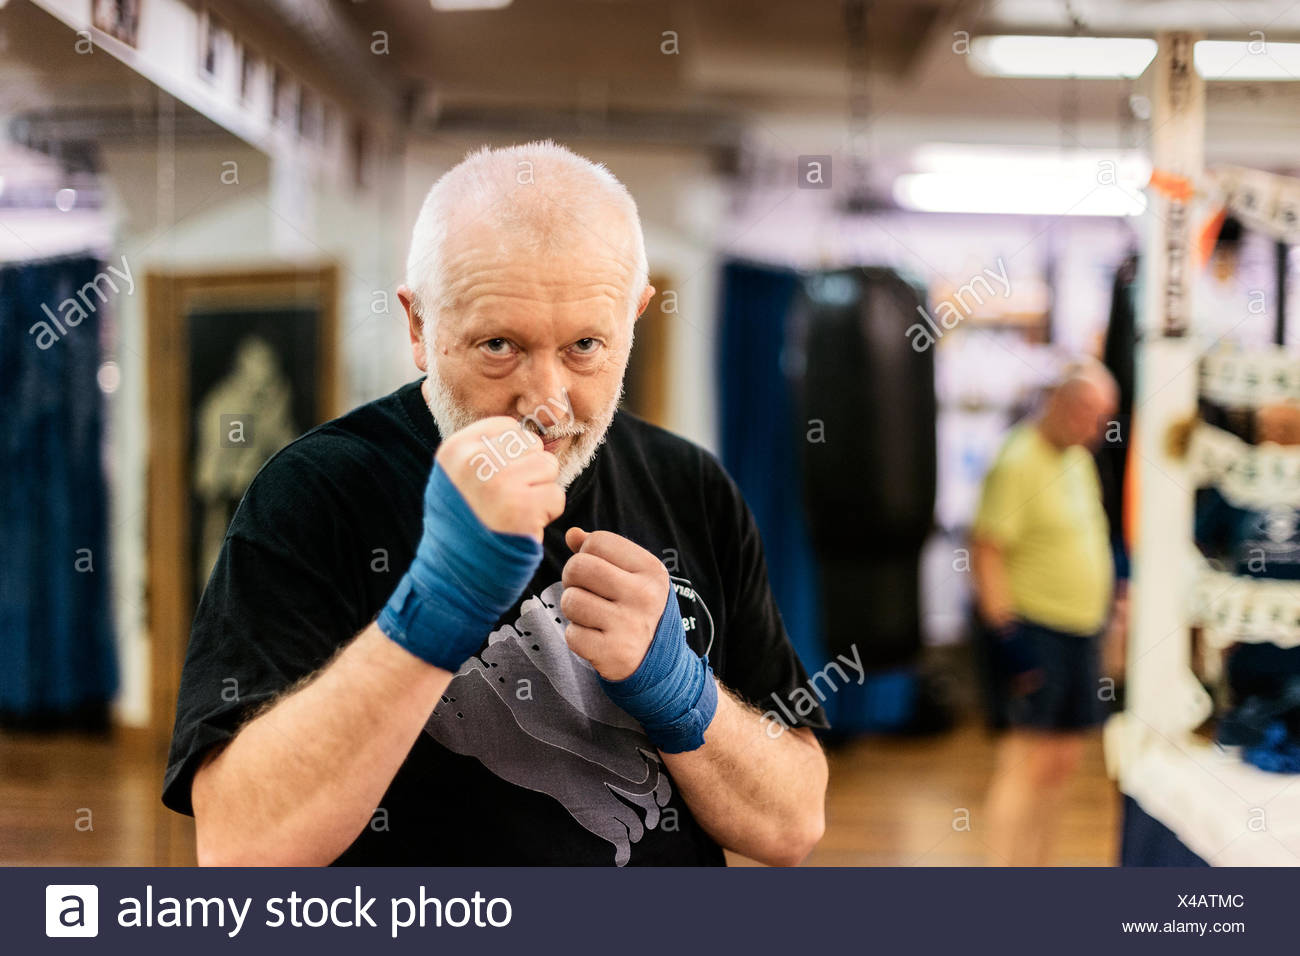 Senior man with his fists raised at boxing training Stock Photo